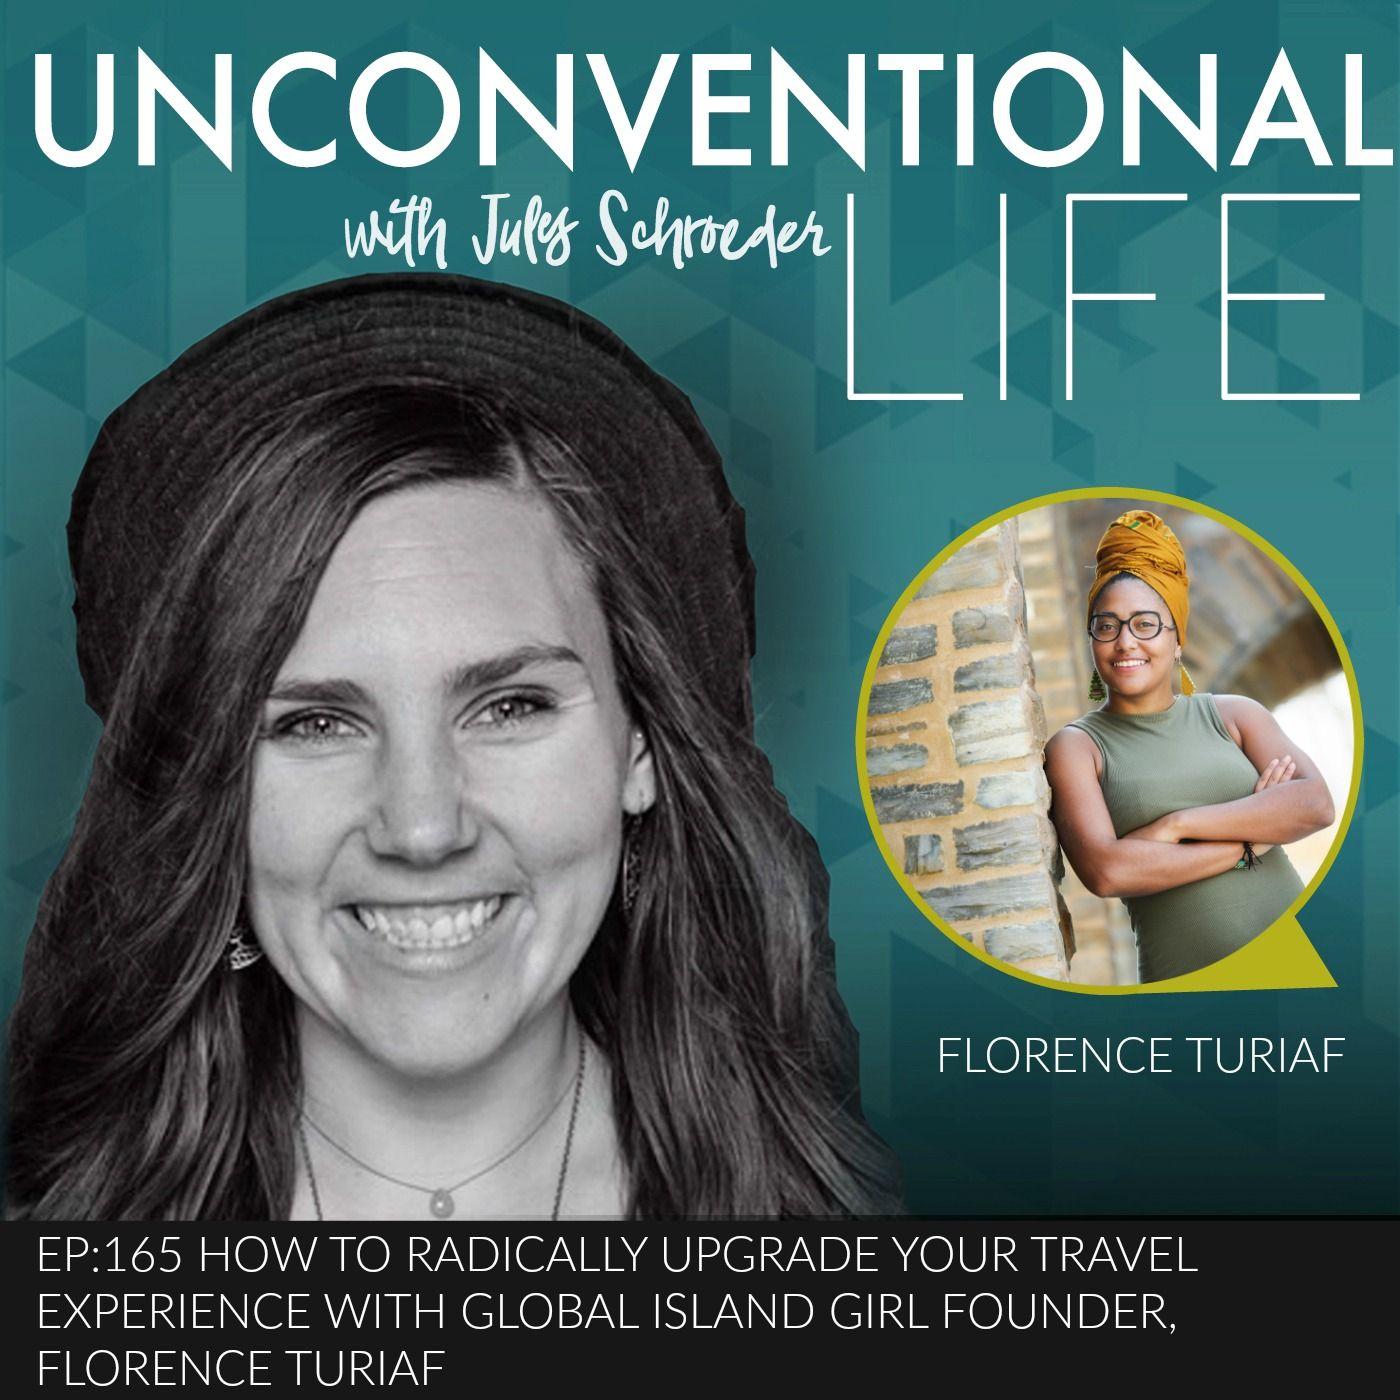 EP:165 How to Radically Upgrade Your Travel Experience with Global Island Girl Founder, Florence Turiaf